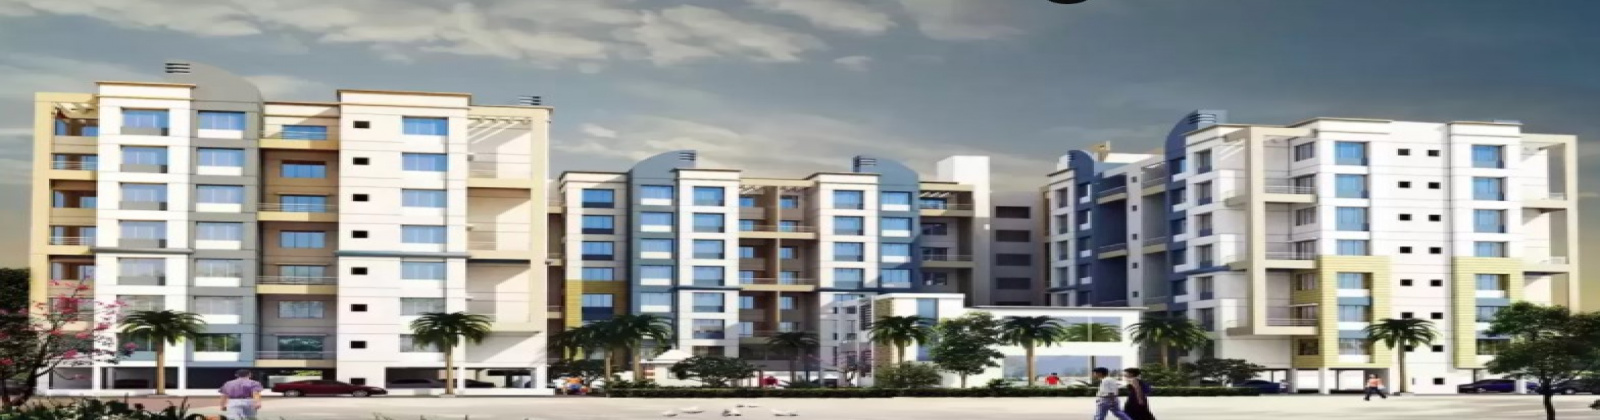 puneG K Wonders Roseland Residency, Pimple Saudaga, pune, 411061, 2 Bedrooms Bedrooms, ,2 BathroomsBathrooms,Apartment,For Sale,puneG K Wonders Roseland Residency, Pimple Saudaga,1005